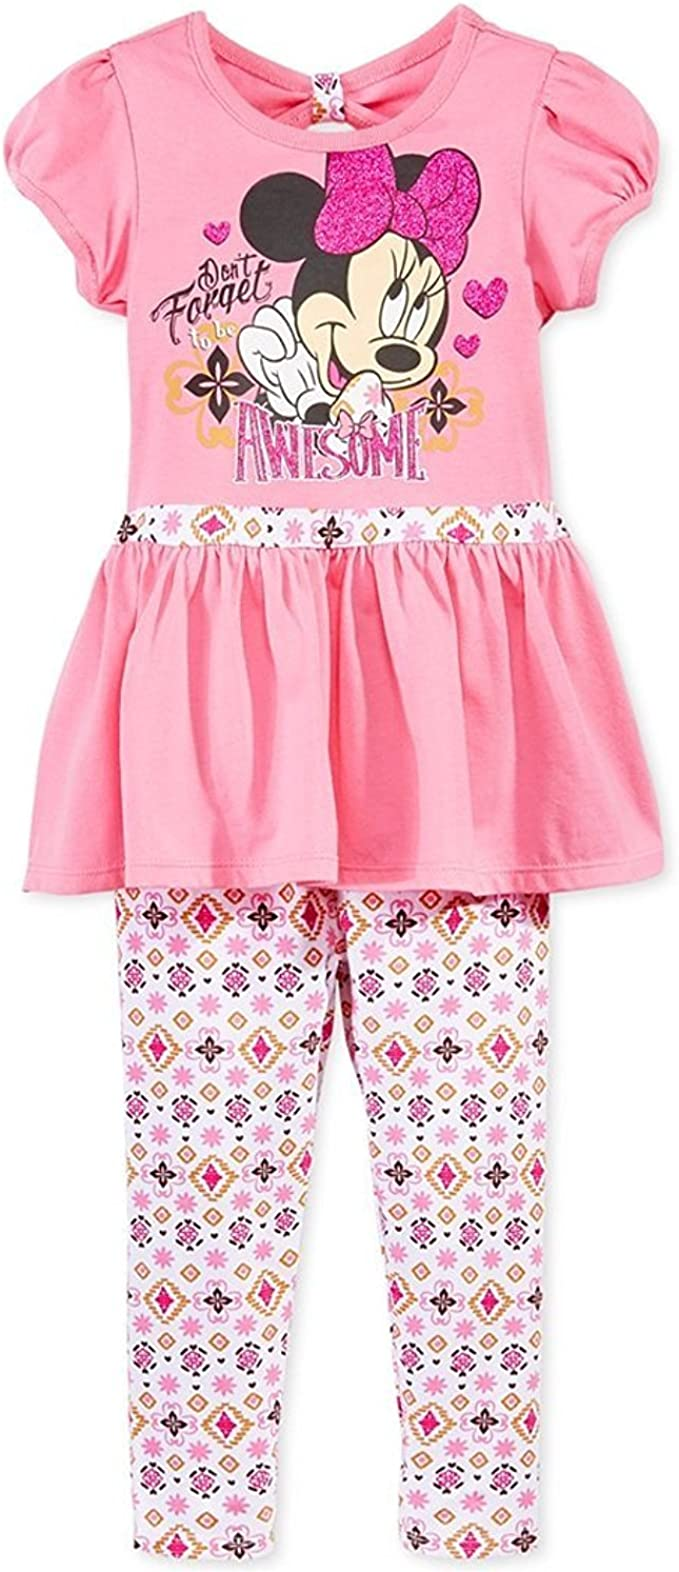 2-6T Girls Strappy Bowknot Pink Cropped Tops Floral Flare Pants Clothes Set